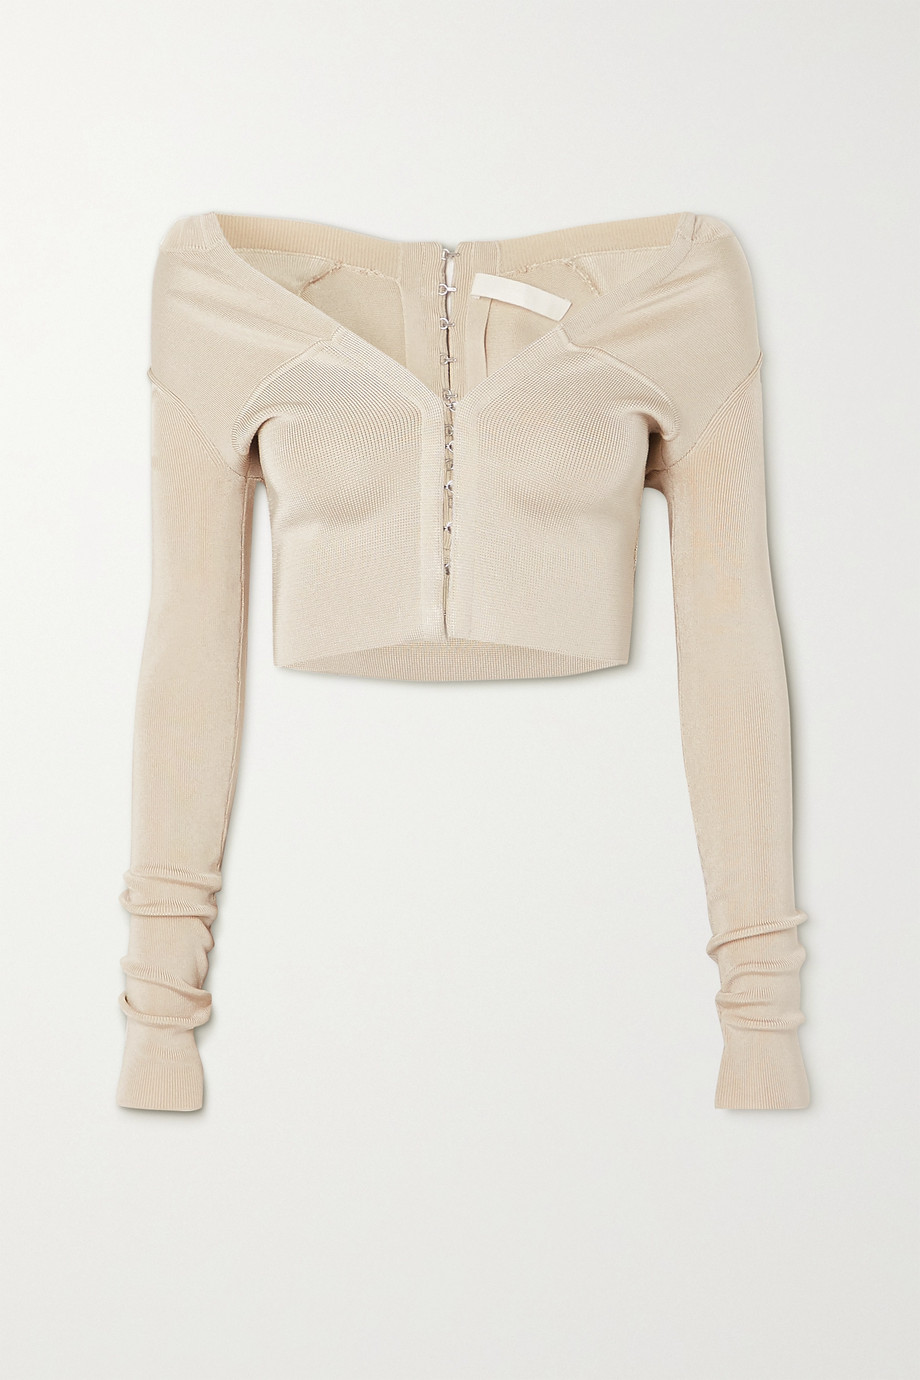 Dion Lee Cropped stretch-knit cardigan